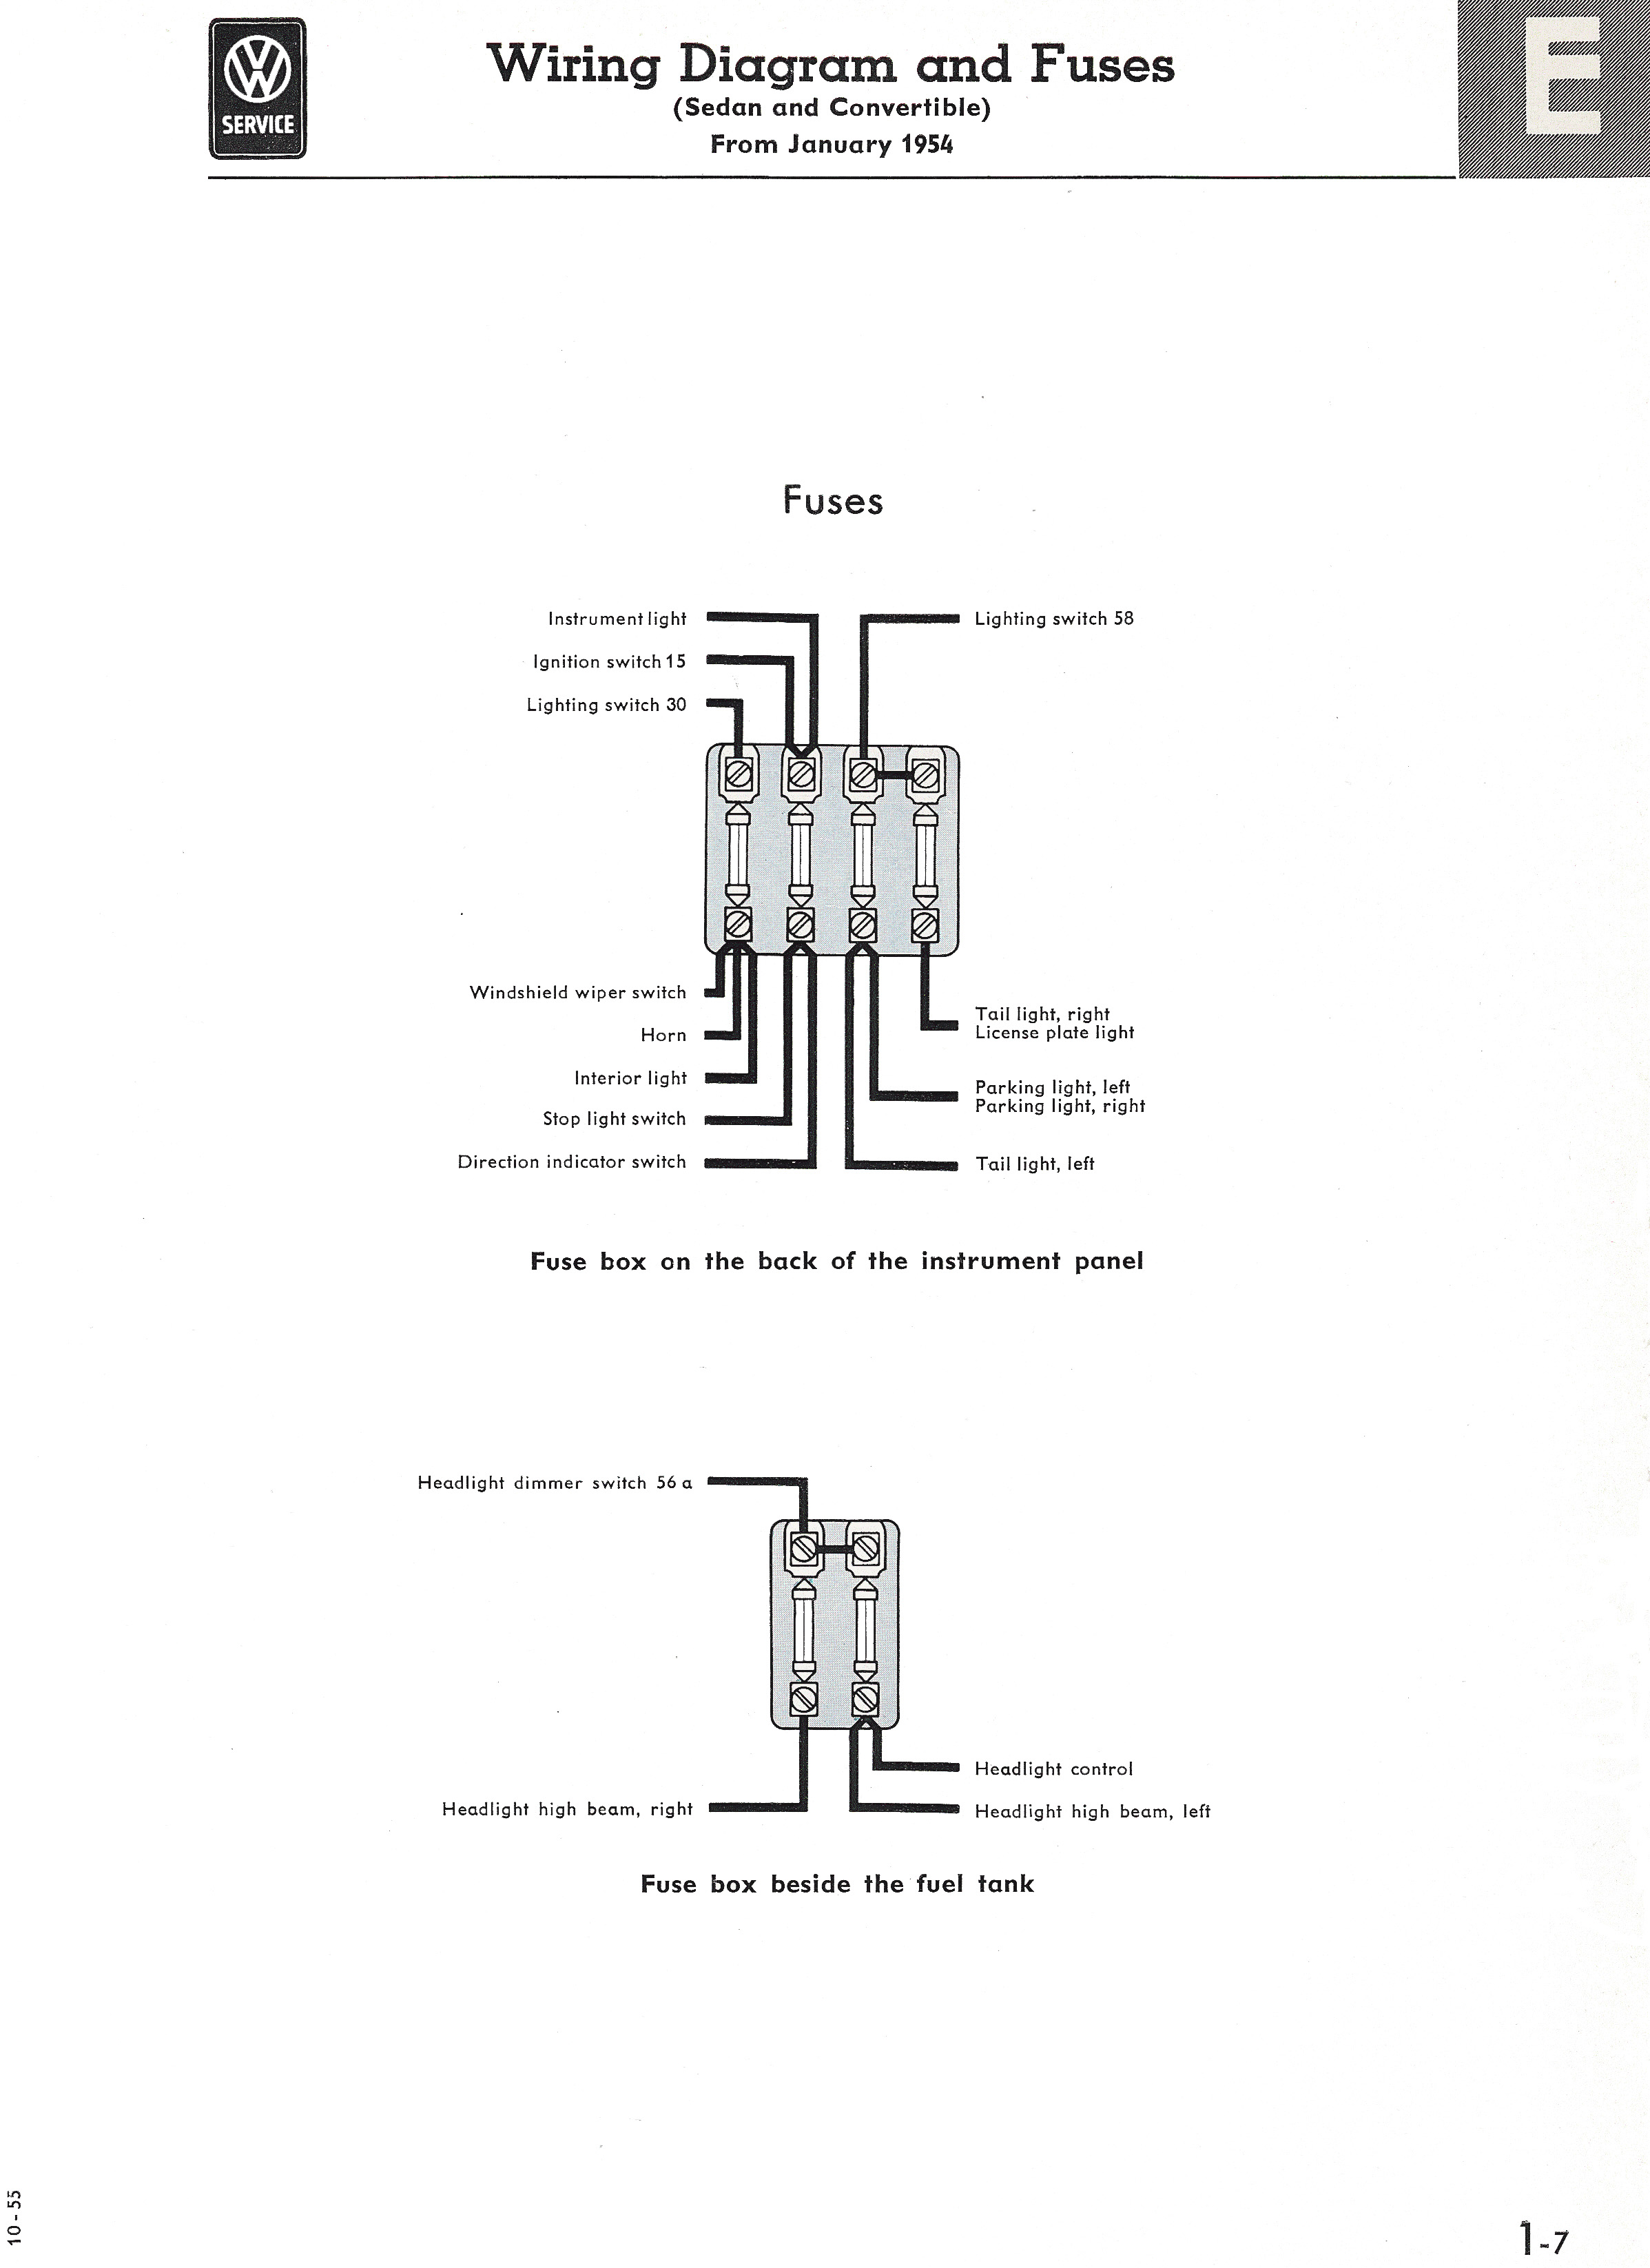 Type 1 Wiring Diagrams 1949 Ford Diagram